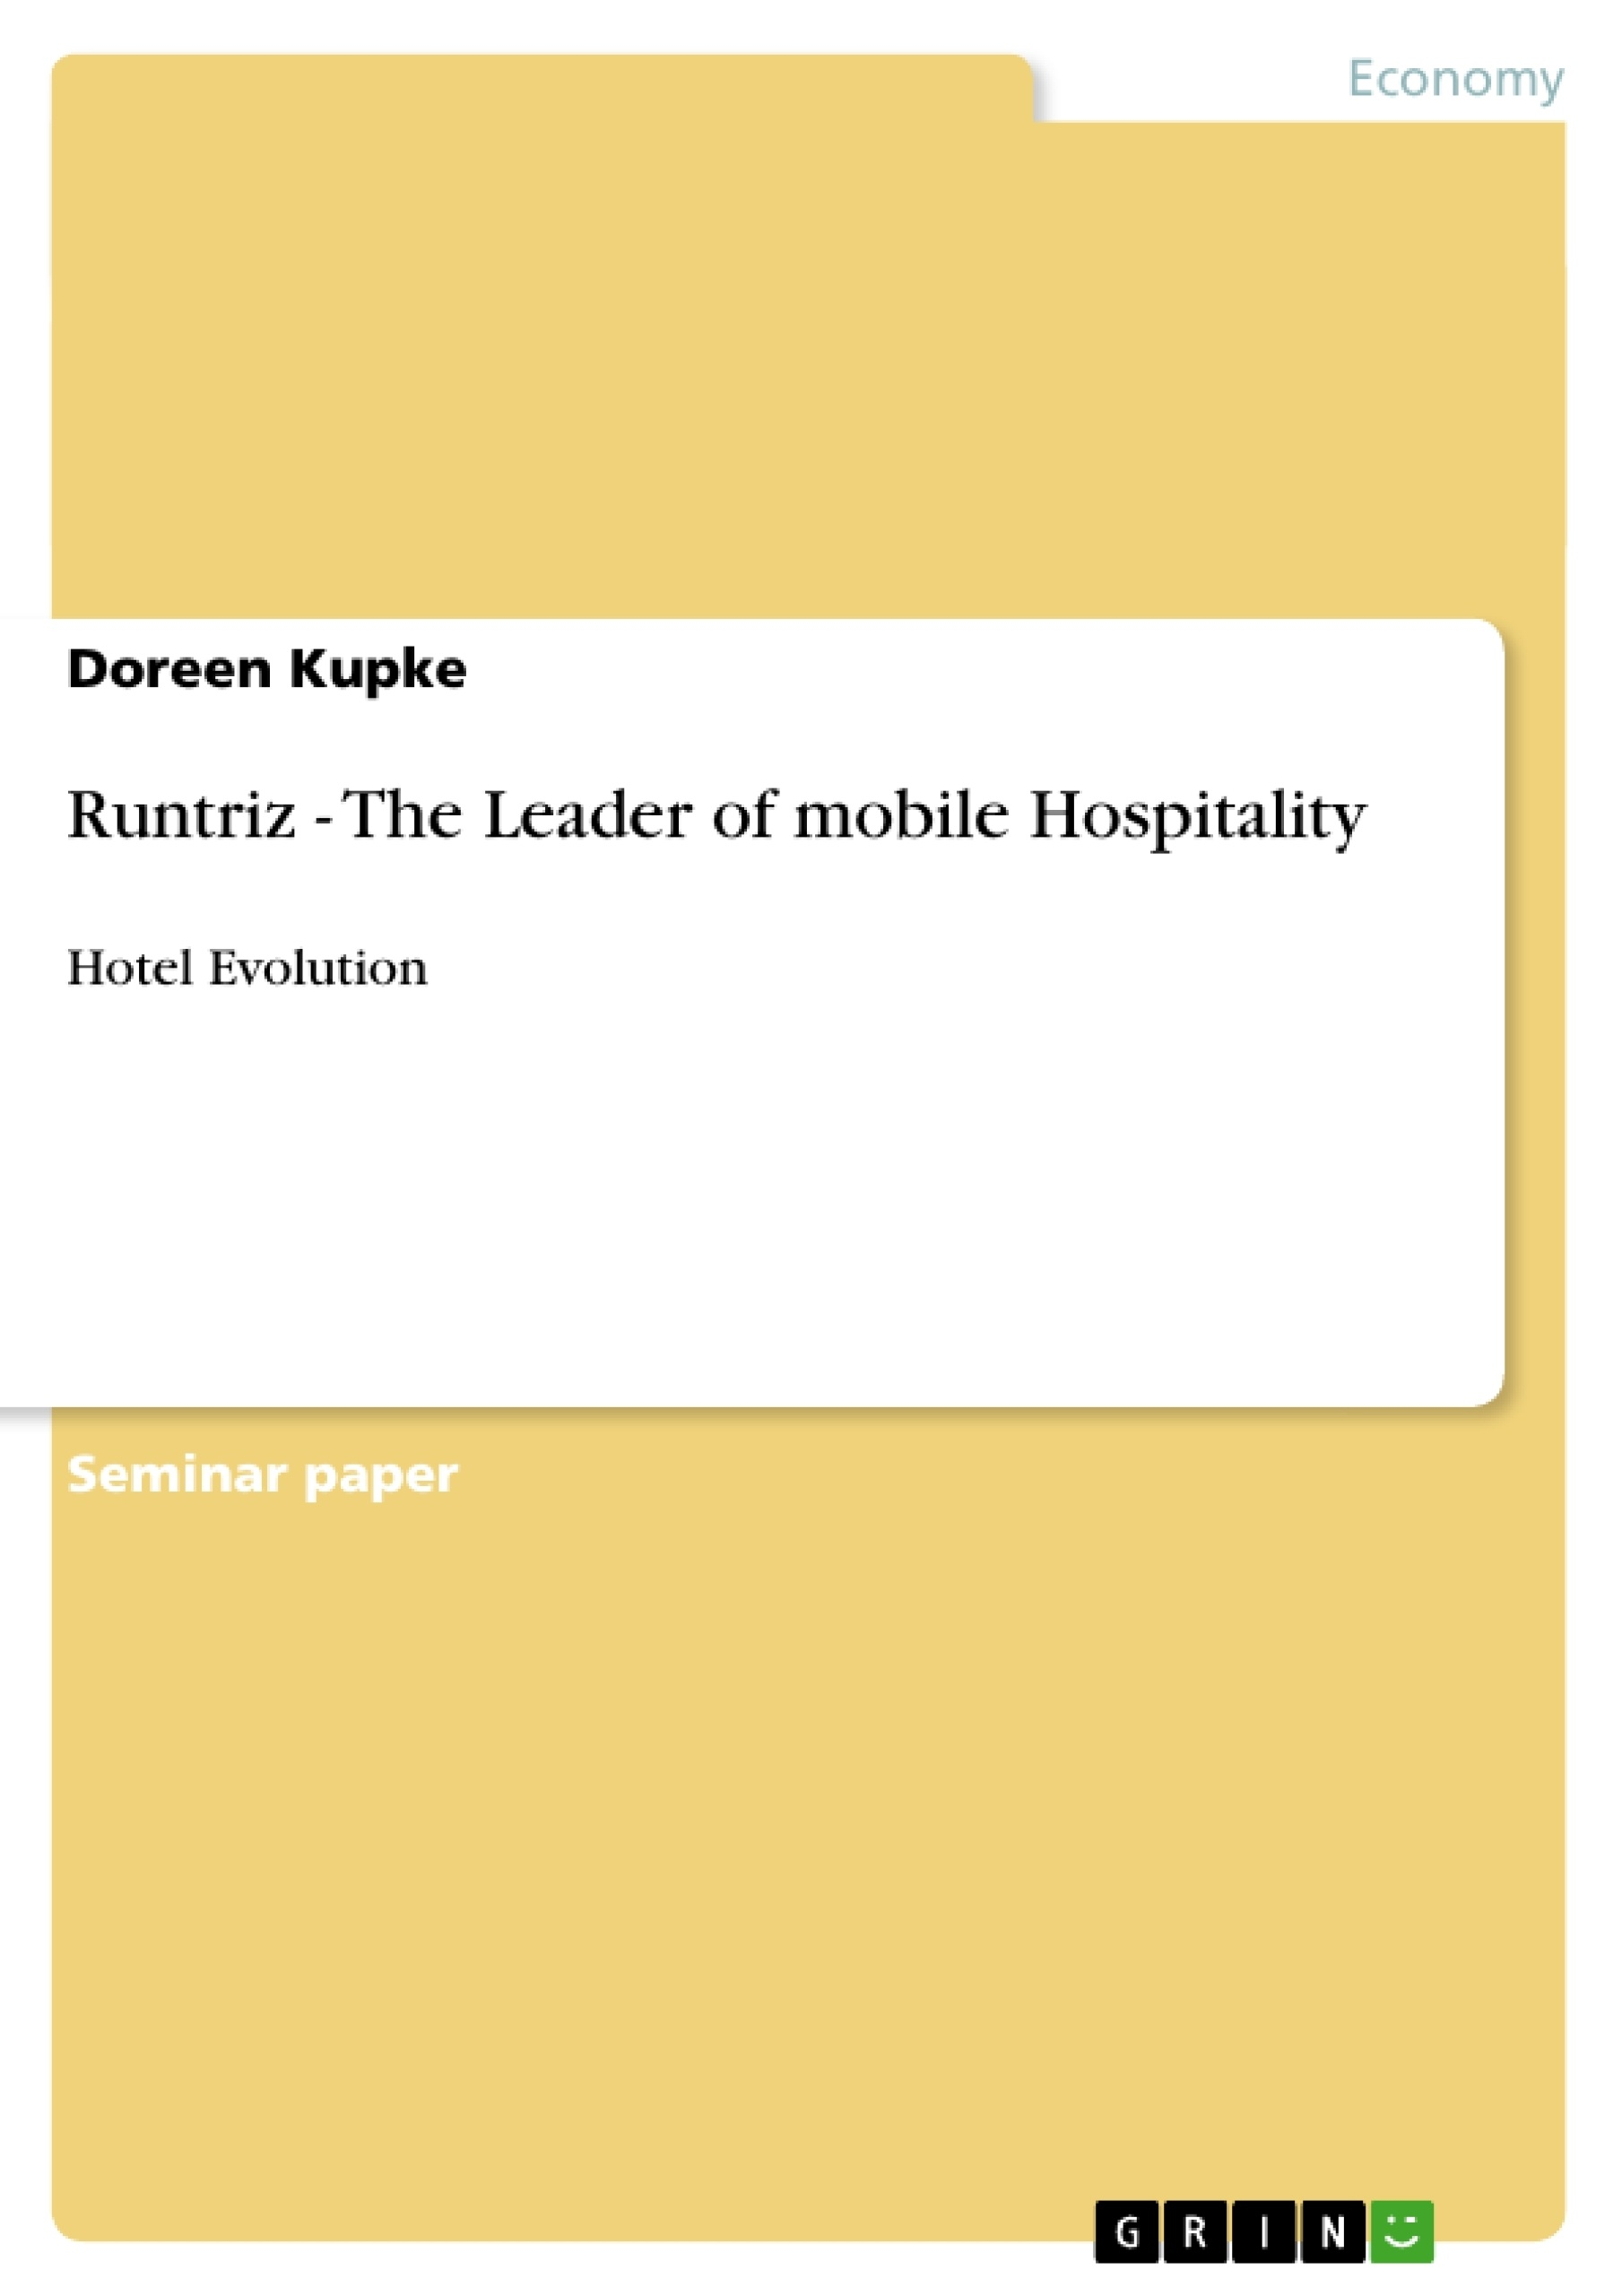 Title: Runtriz - The Leader of mobile Hospitality